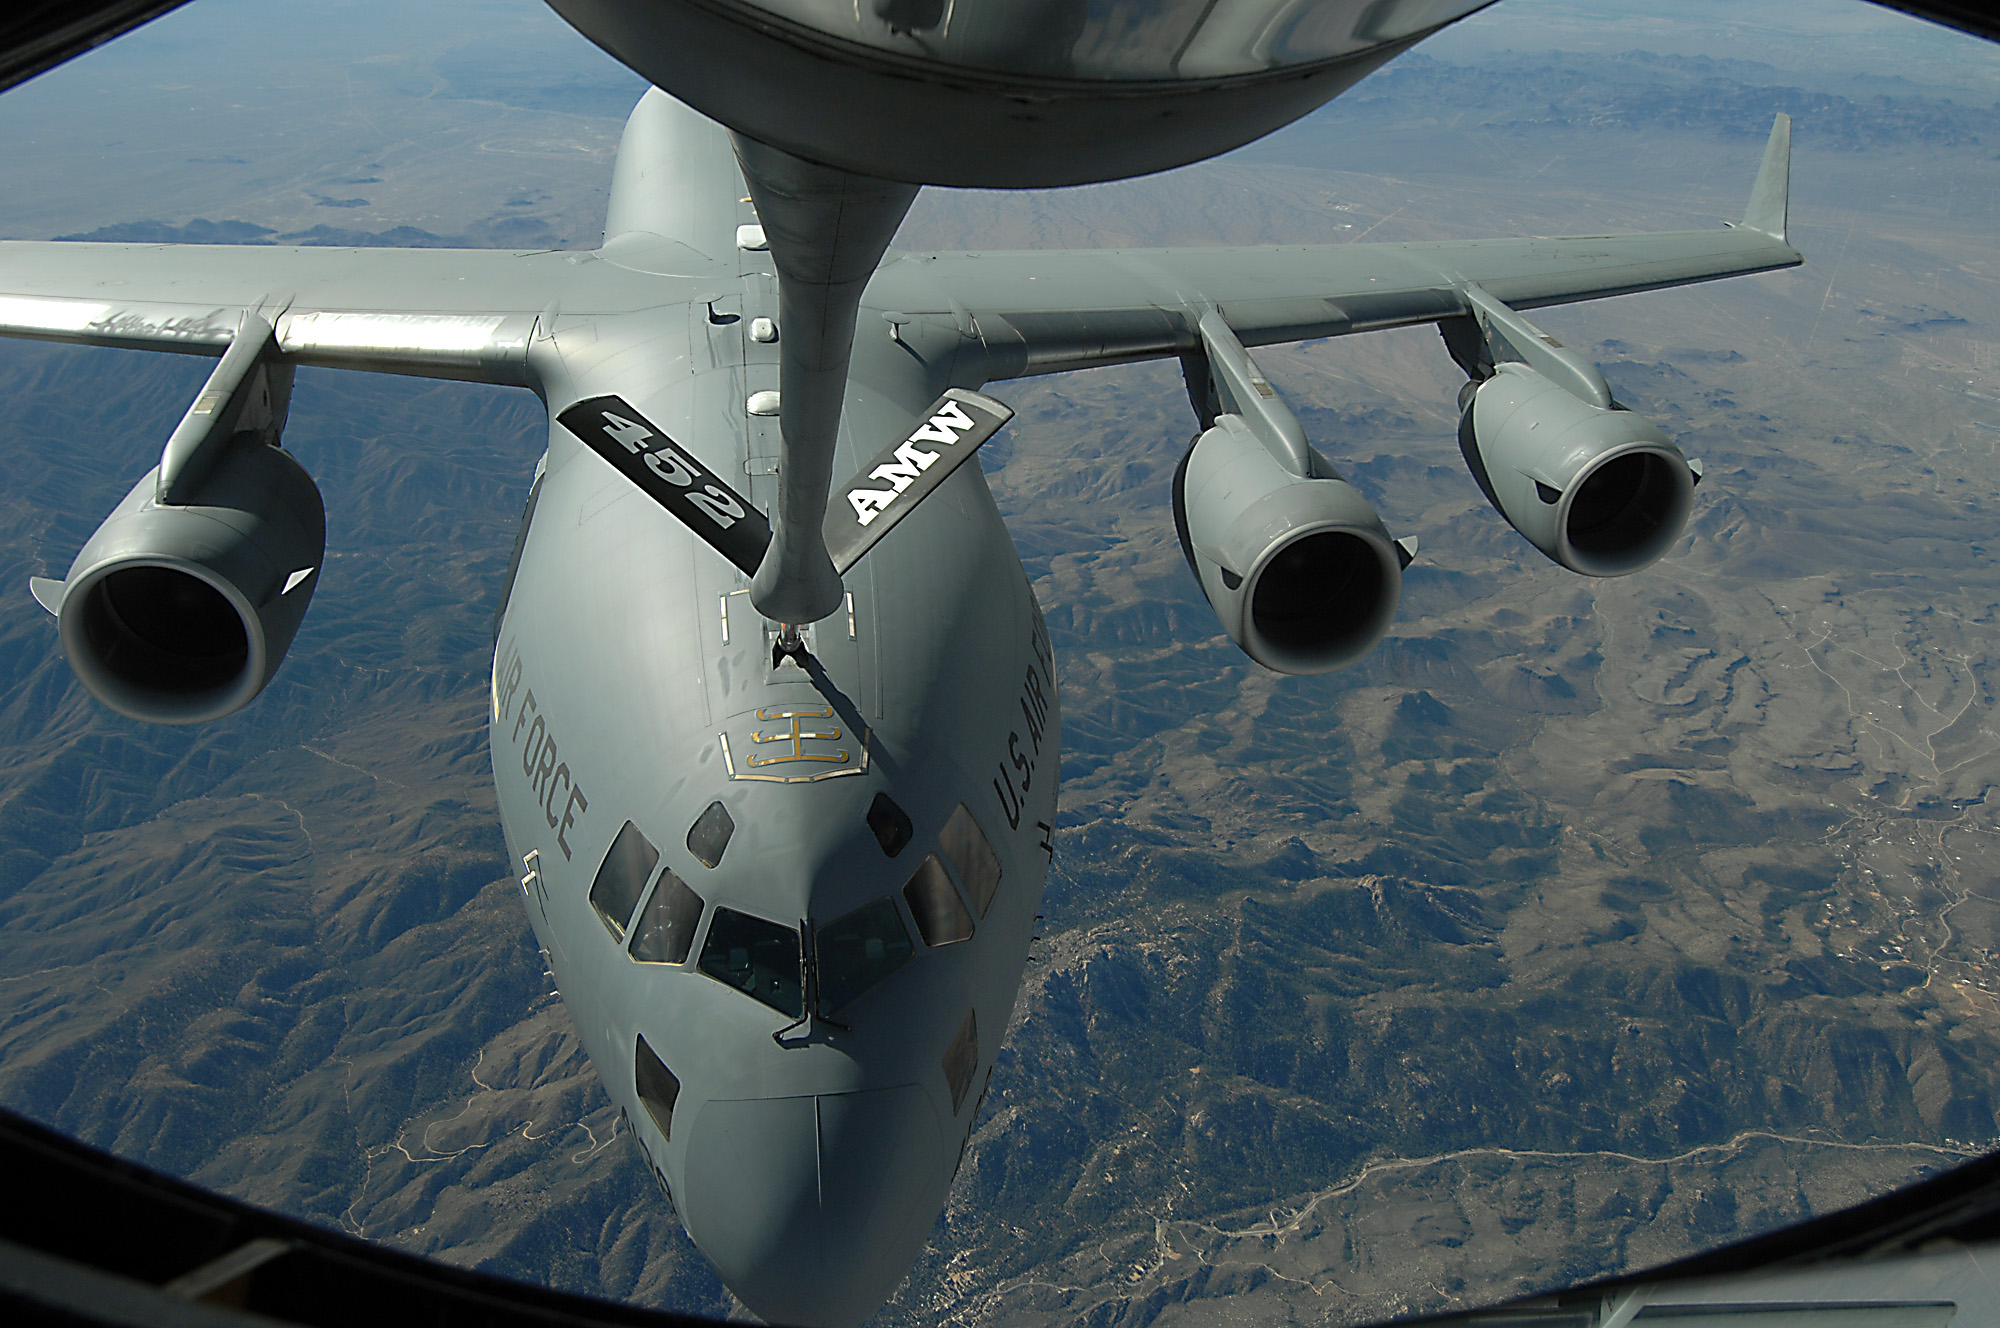 File:A C-17 Globemaster III receives fuel from a KC-135 Stratotanker